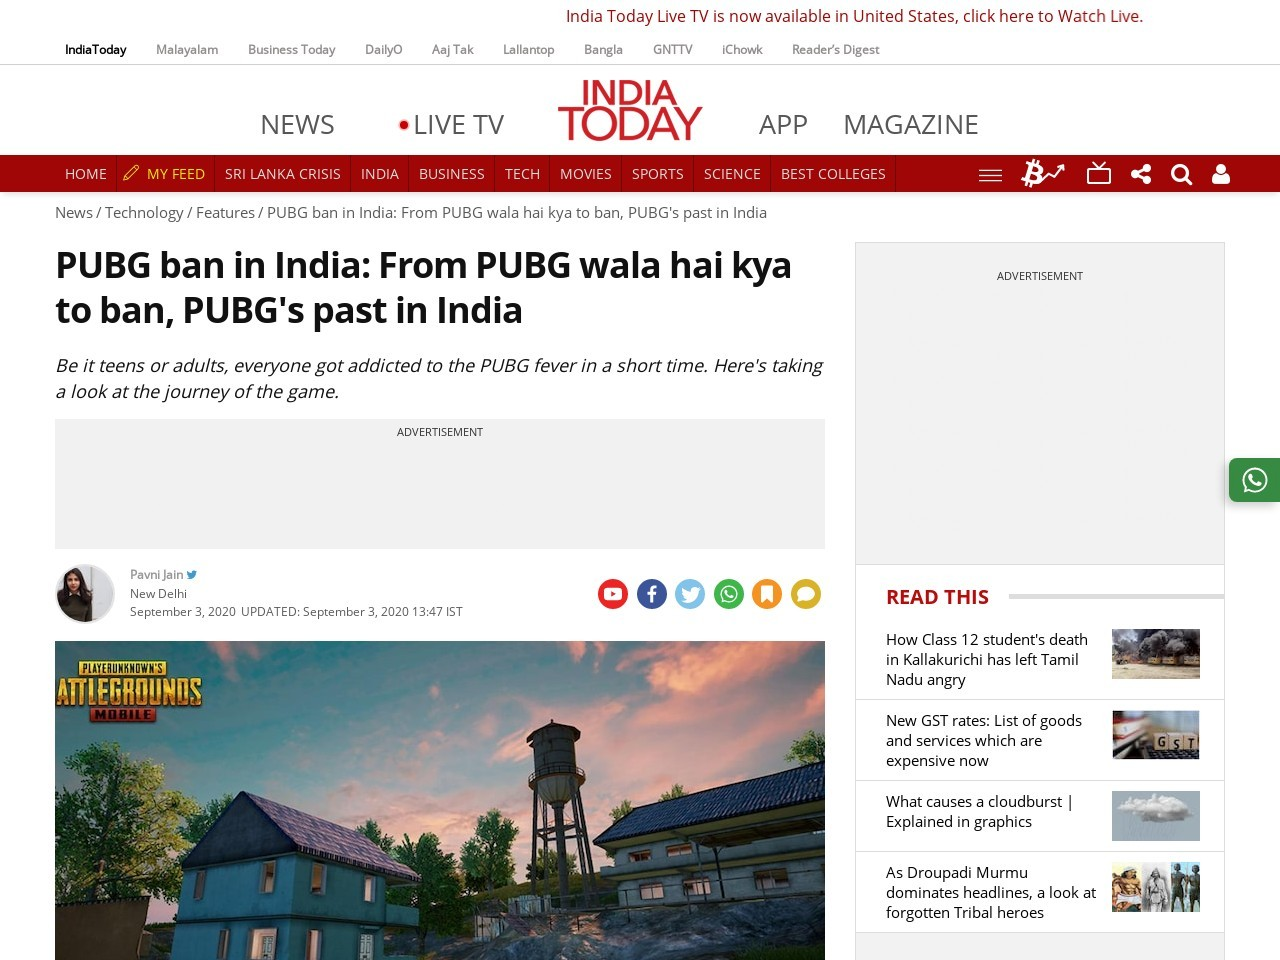 PUBG ban in India: From PUBG wala hai kya to ban, PUBG's past in India